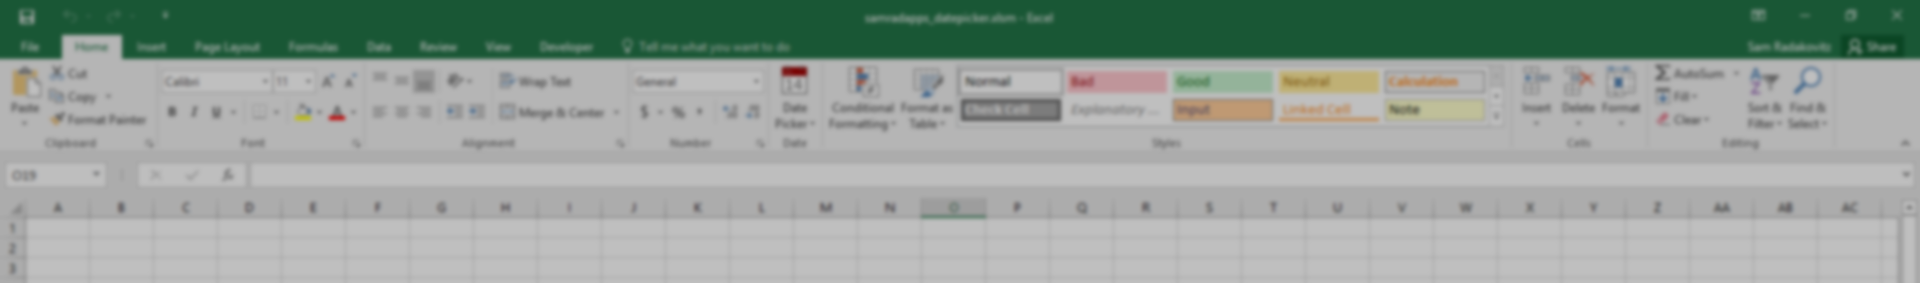 Excel Date Picker — Sam Radakovitz